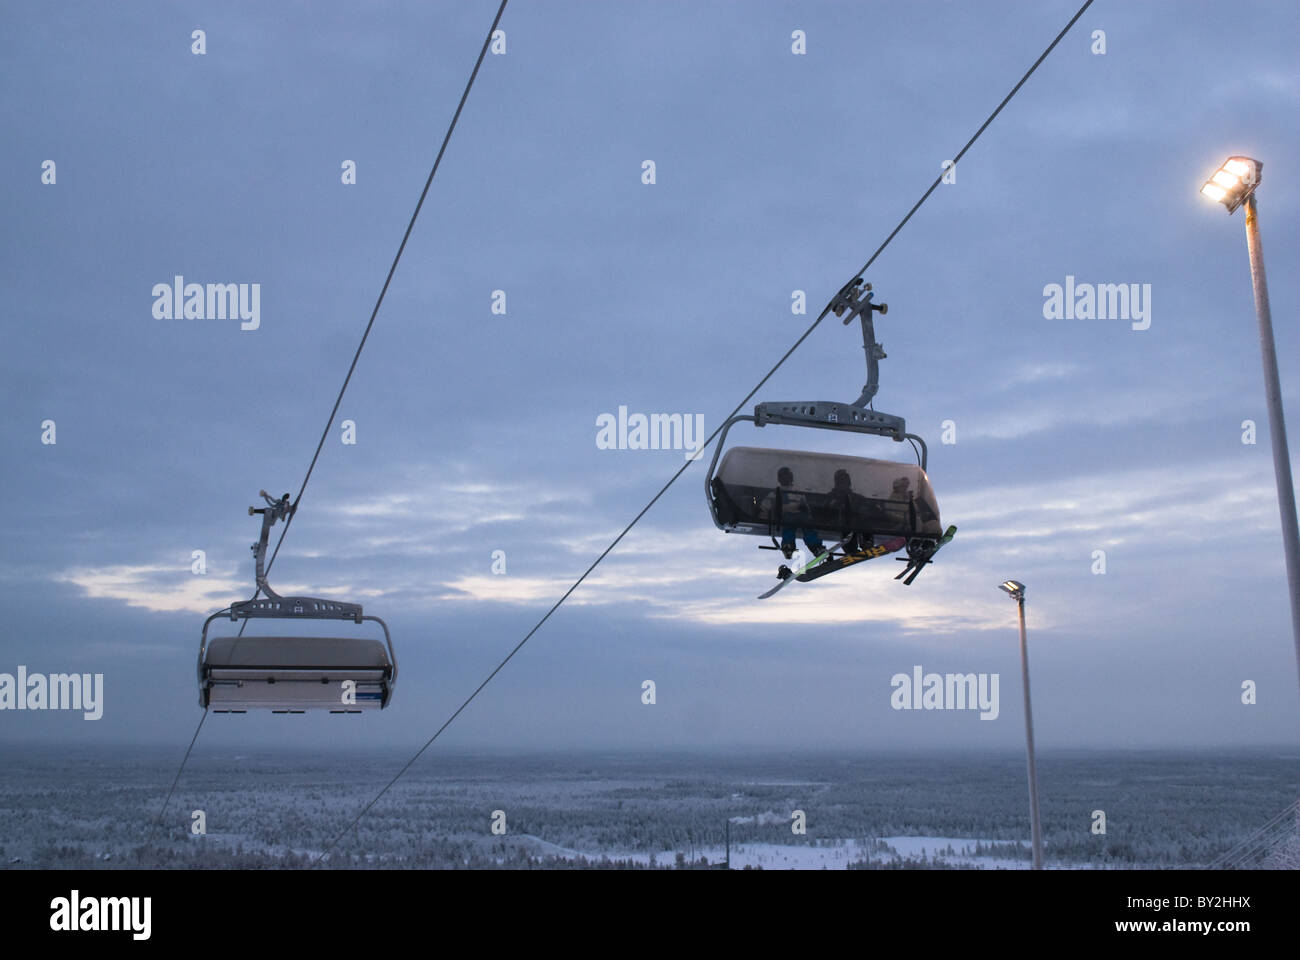 Skiers on the chair ski-lift of Pyhätunturi, Lapland, Finland photographed during the mid-winter 'blue - Stock Image